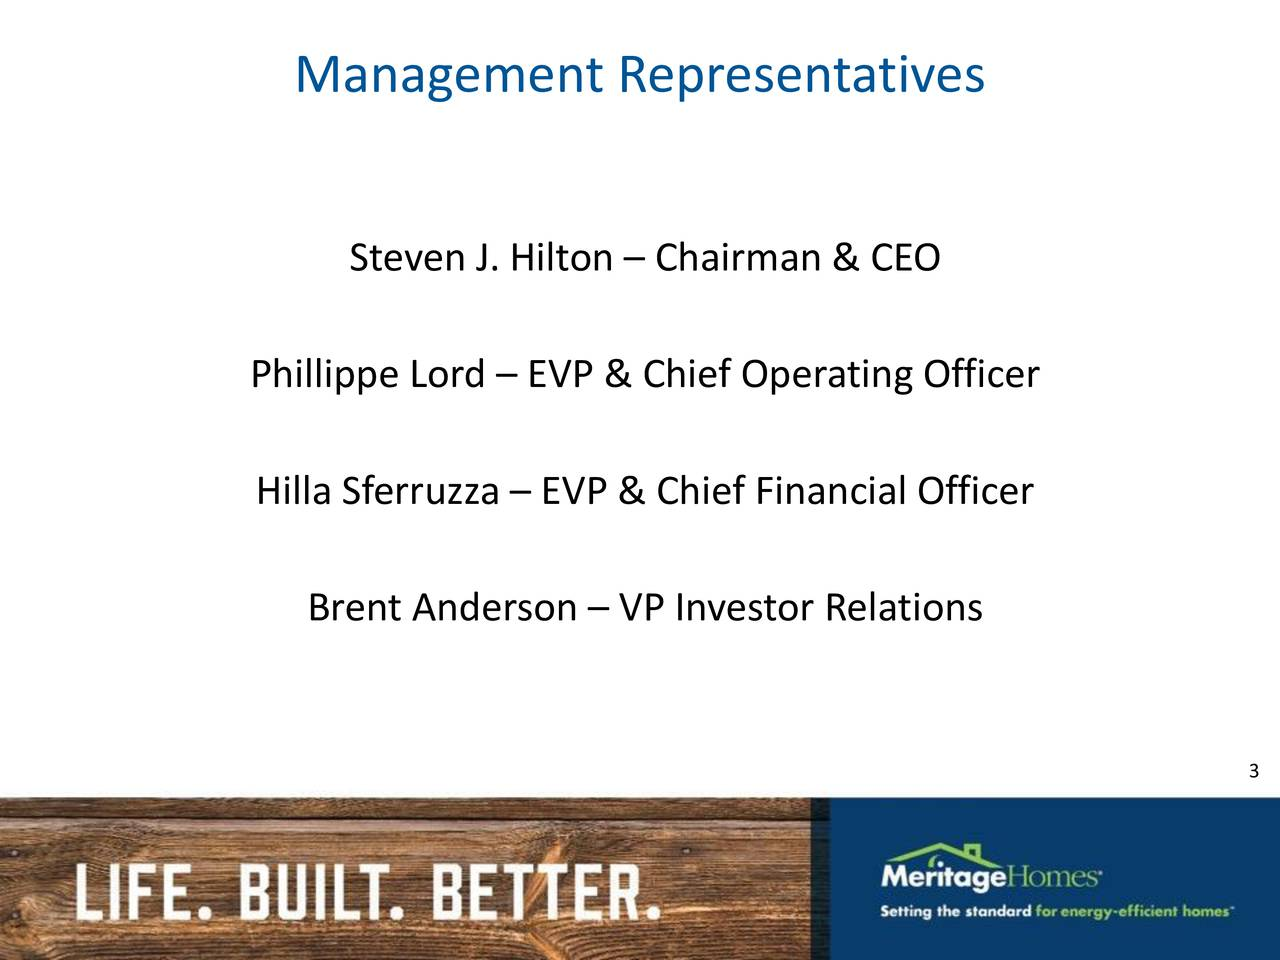 Steven J. Hilton  Chairman & CEO Phillippe Lord  EVP & Chief Operating Officer Hilla Sferruzza  EVP & Chief Financial Officer Brent Anderson  VP Investor Relations 3